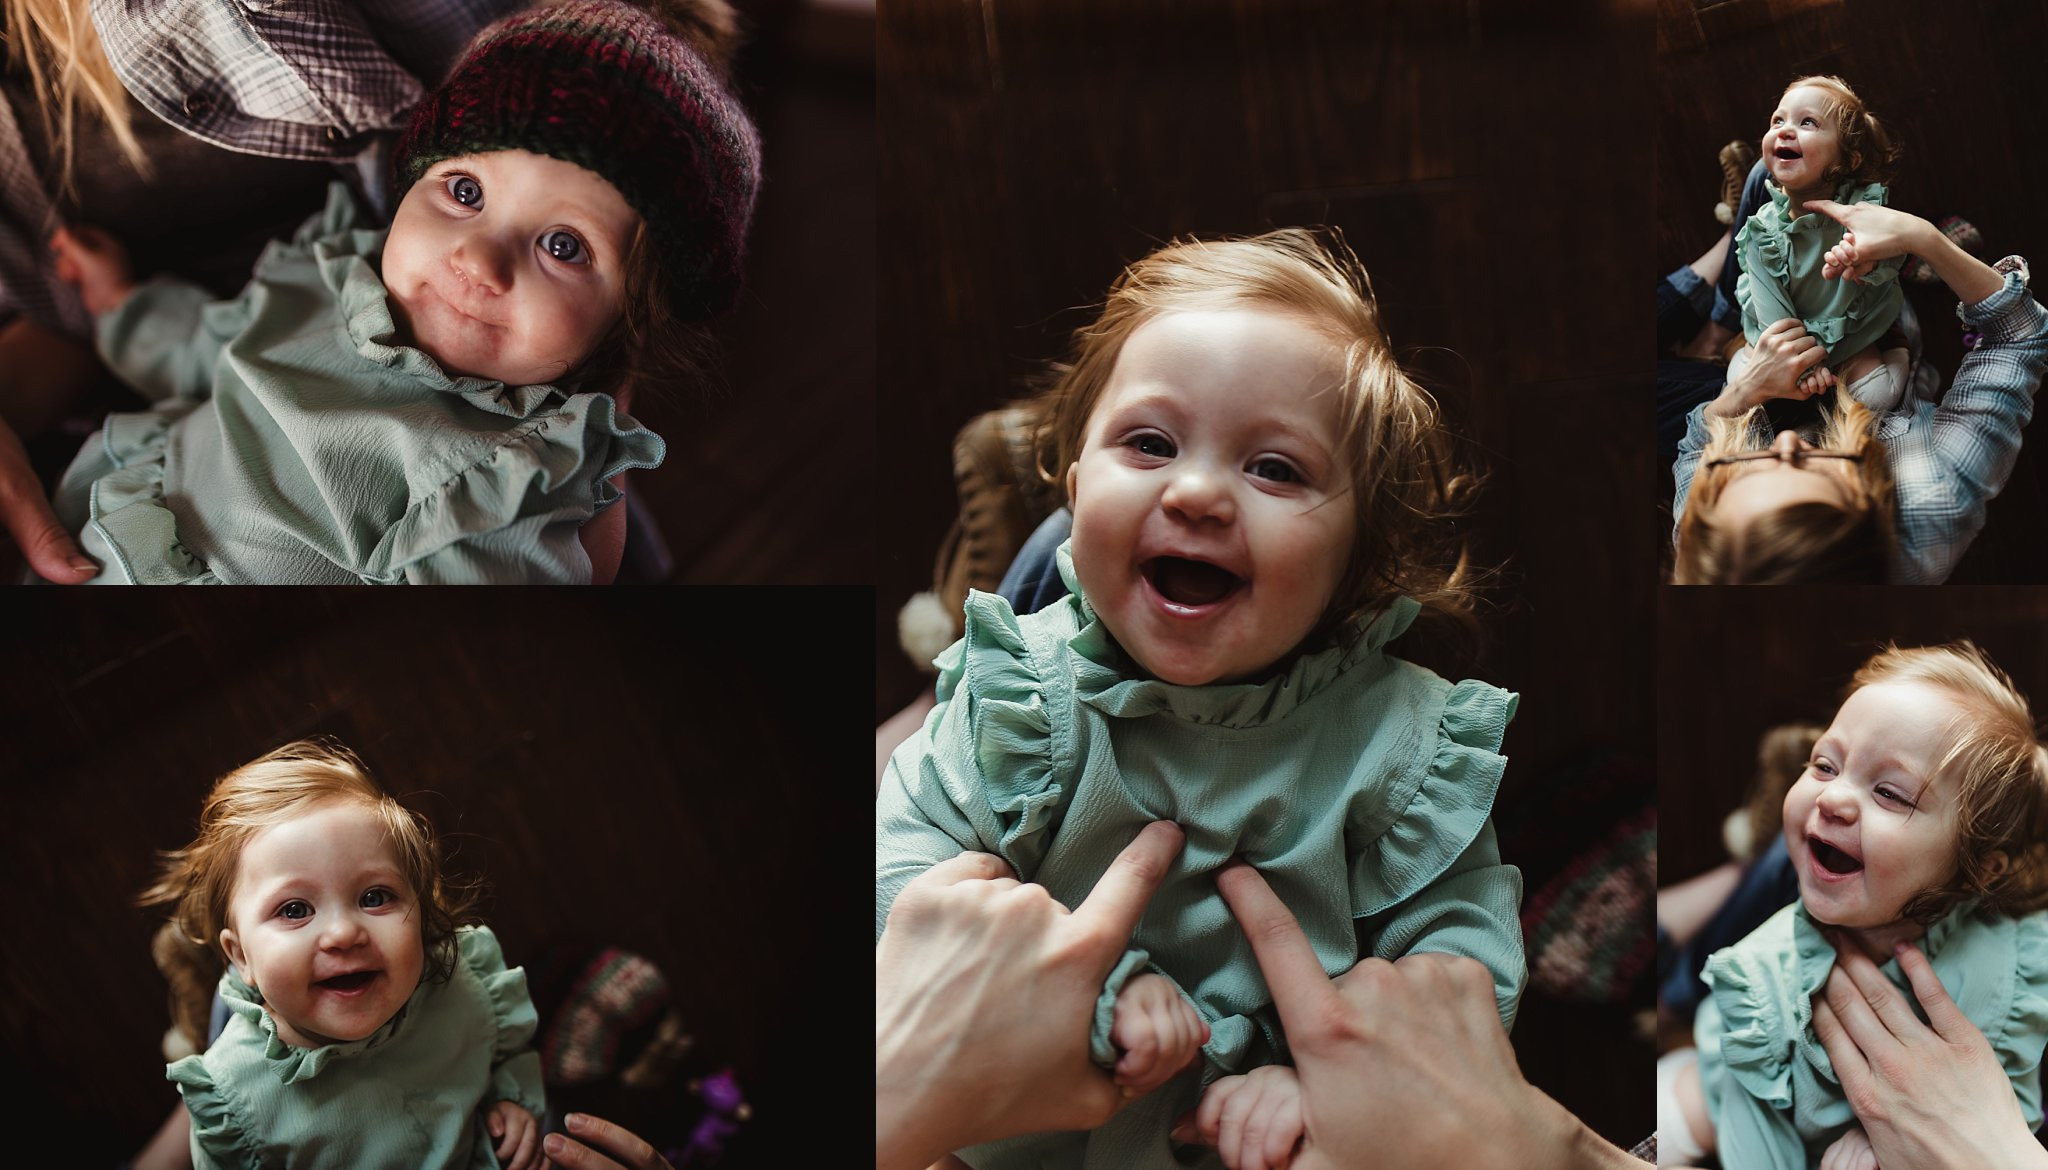 Baby laughs in mom's arms during documentary photography session.